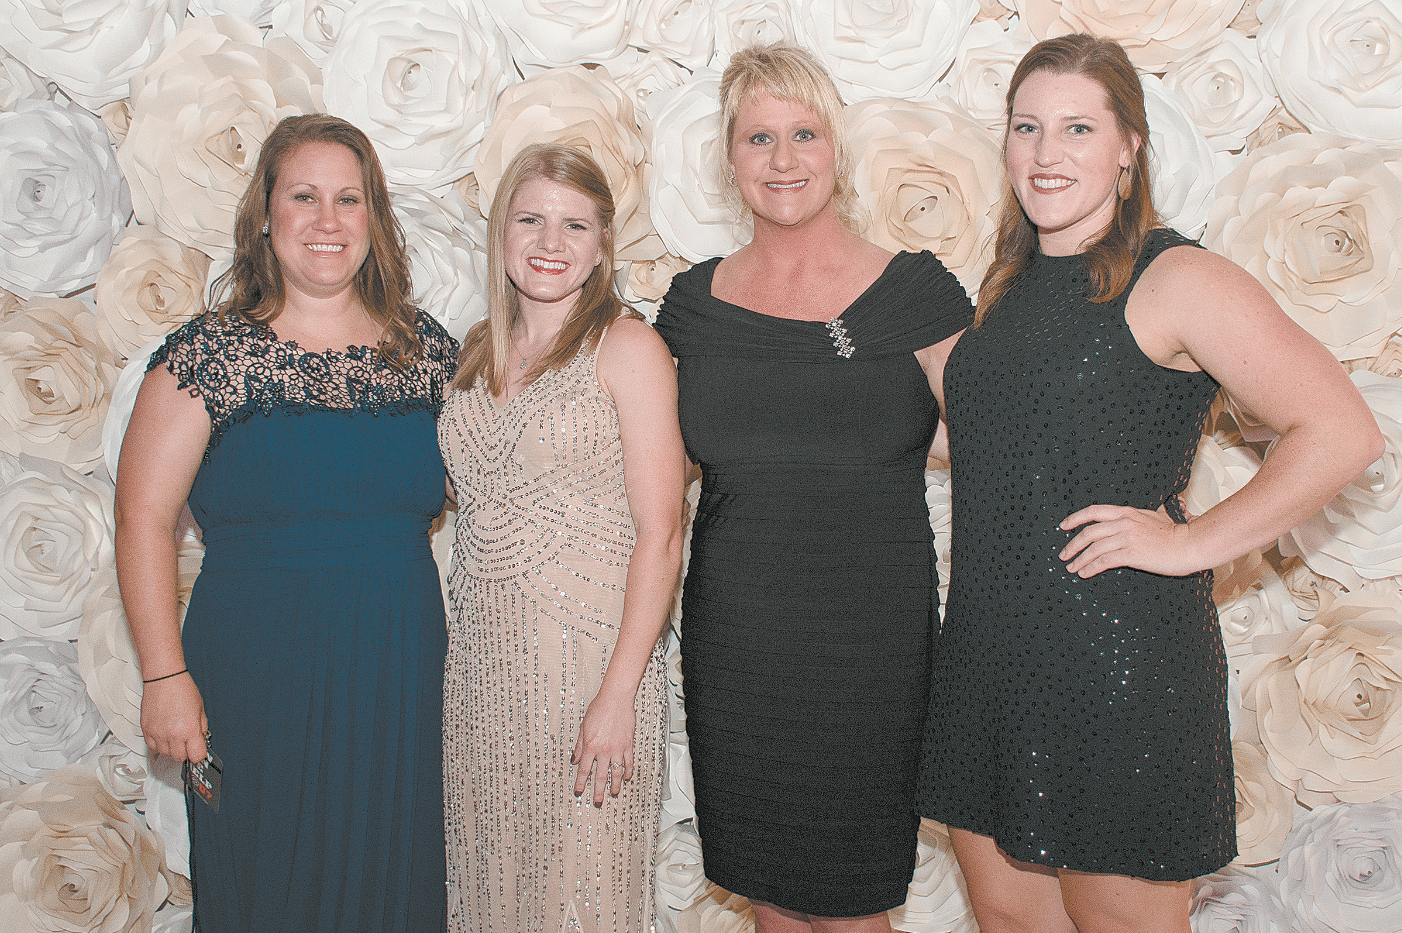 Mandy McMichael, Rachel Arrington, Karen Gay and Bailey Judd.